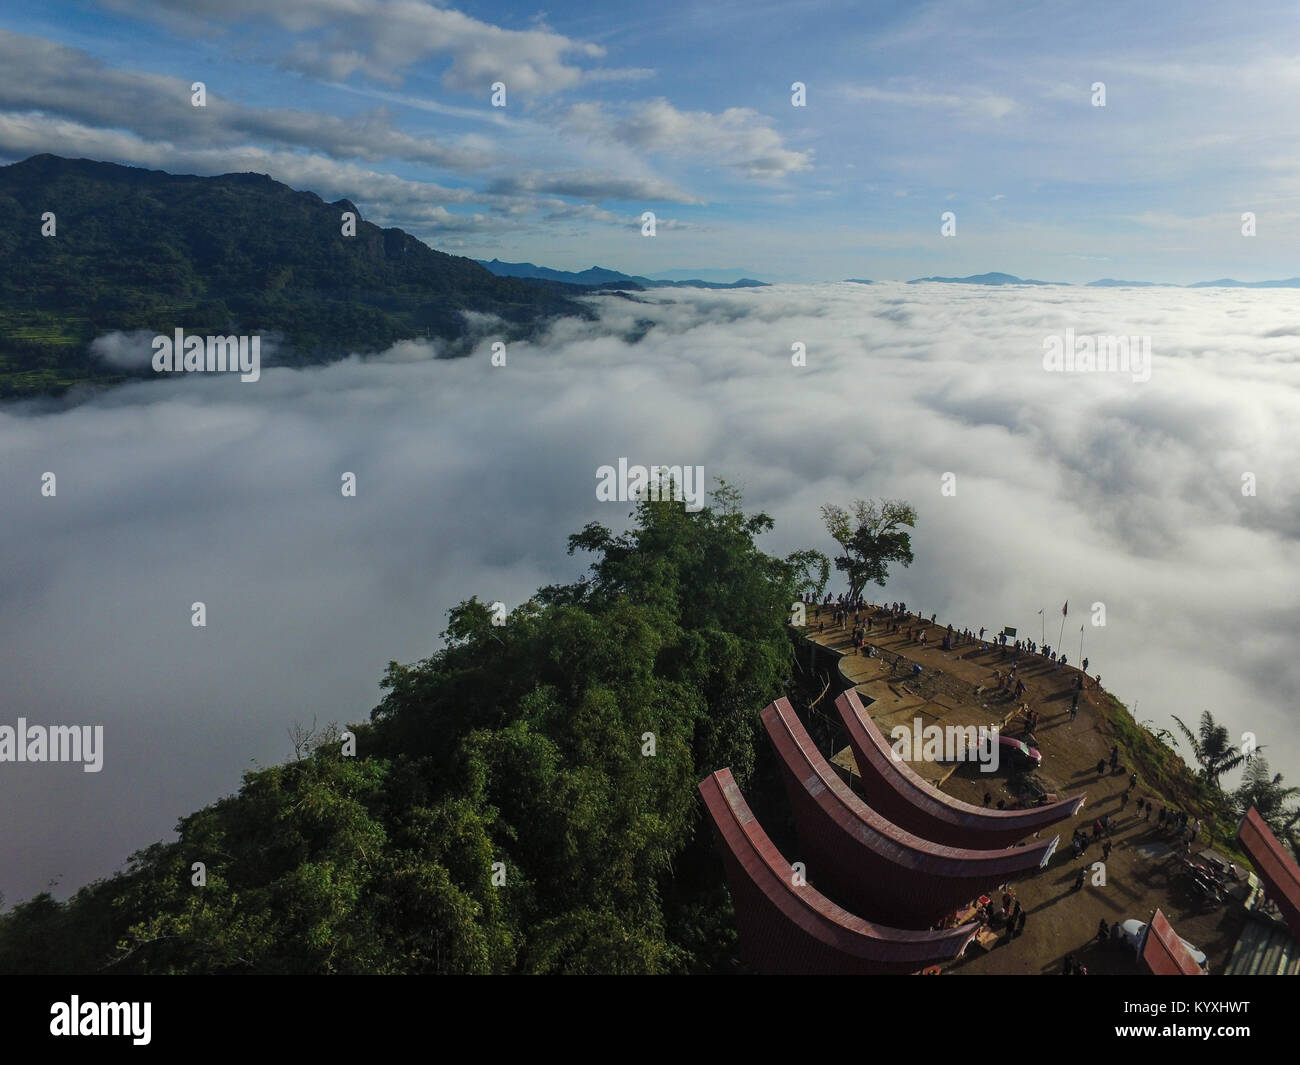 Lolai the land above the clouds in the regency of North Toraja - South Sulawesi - Indonesia. - Stock Image